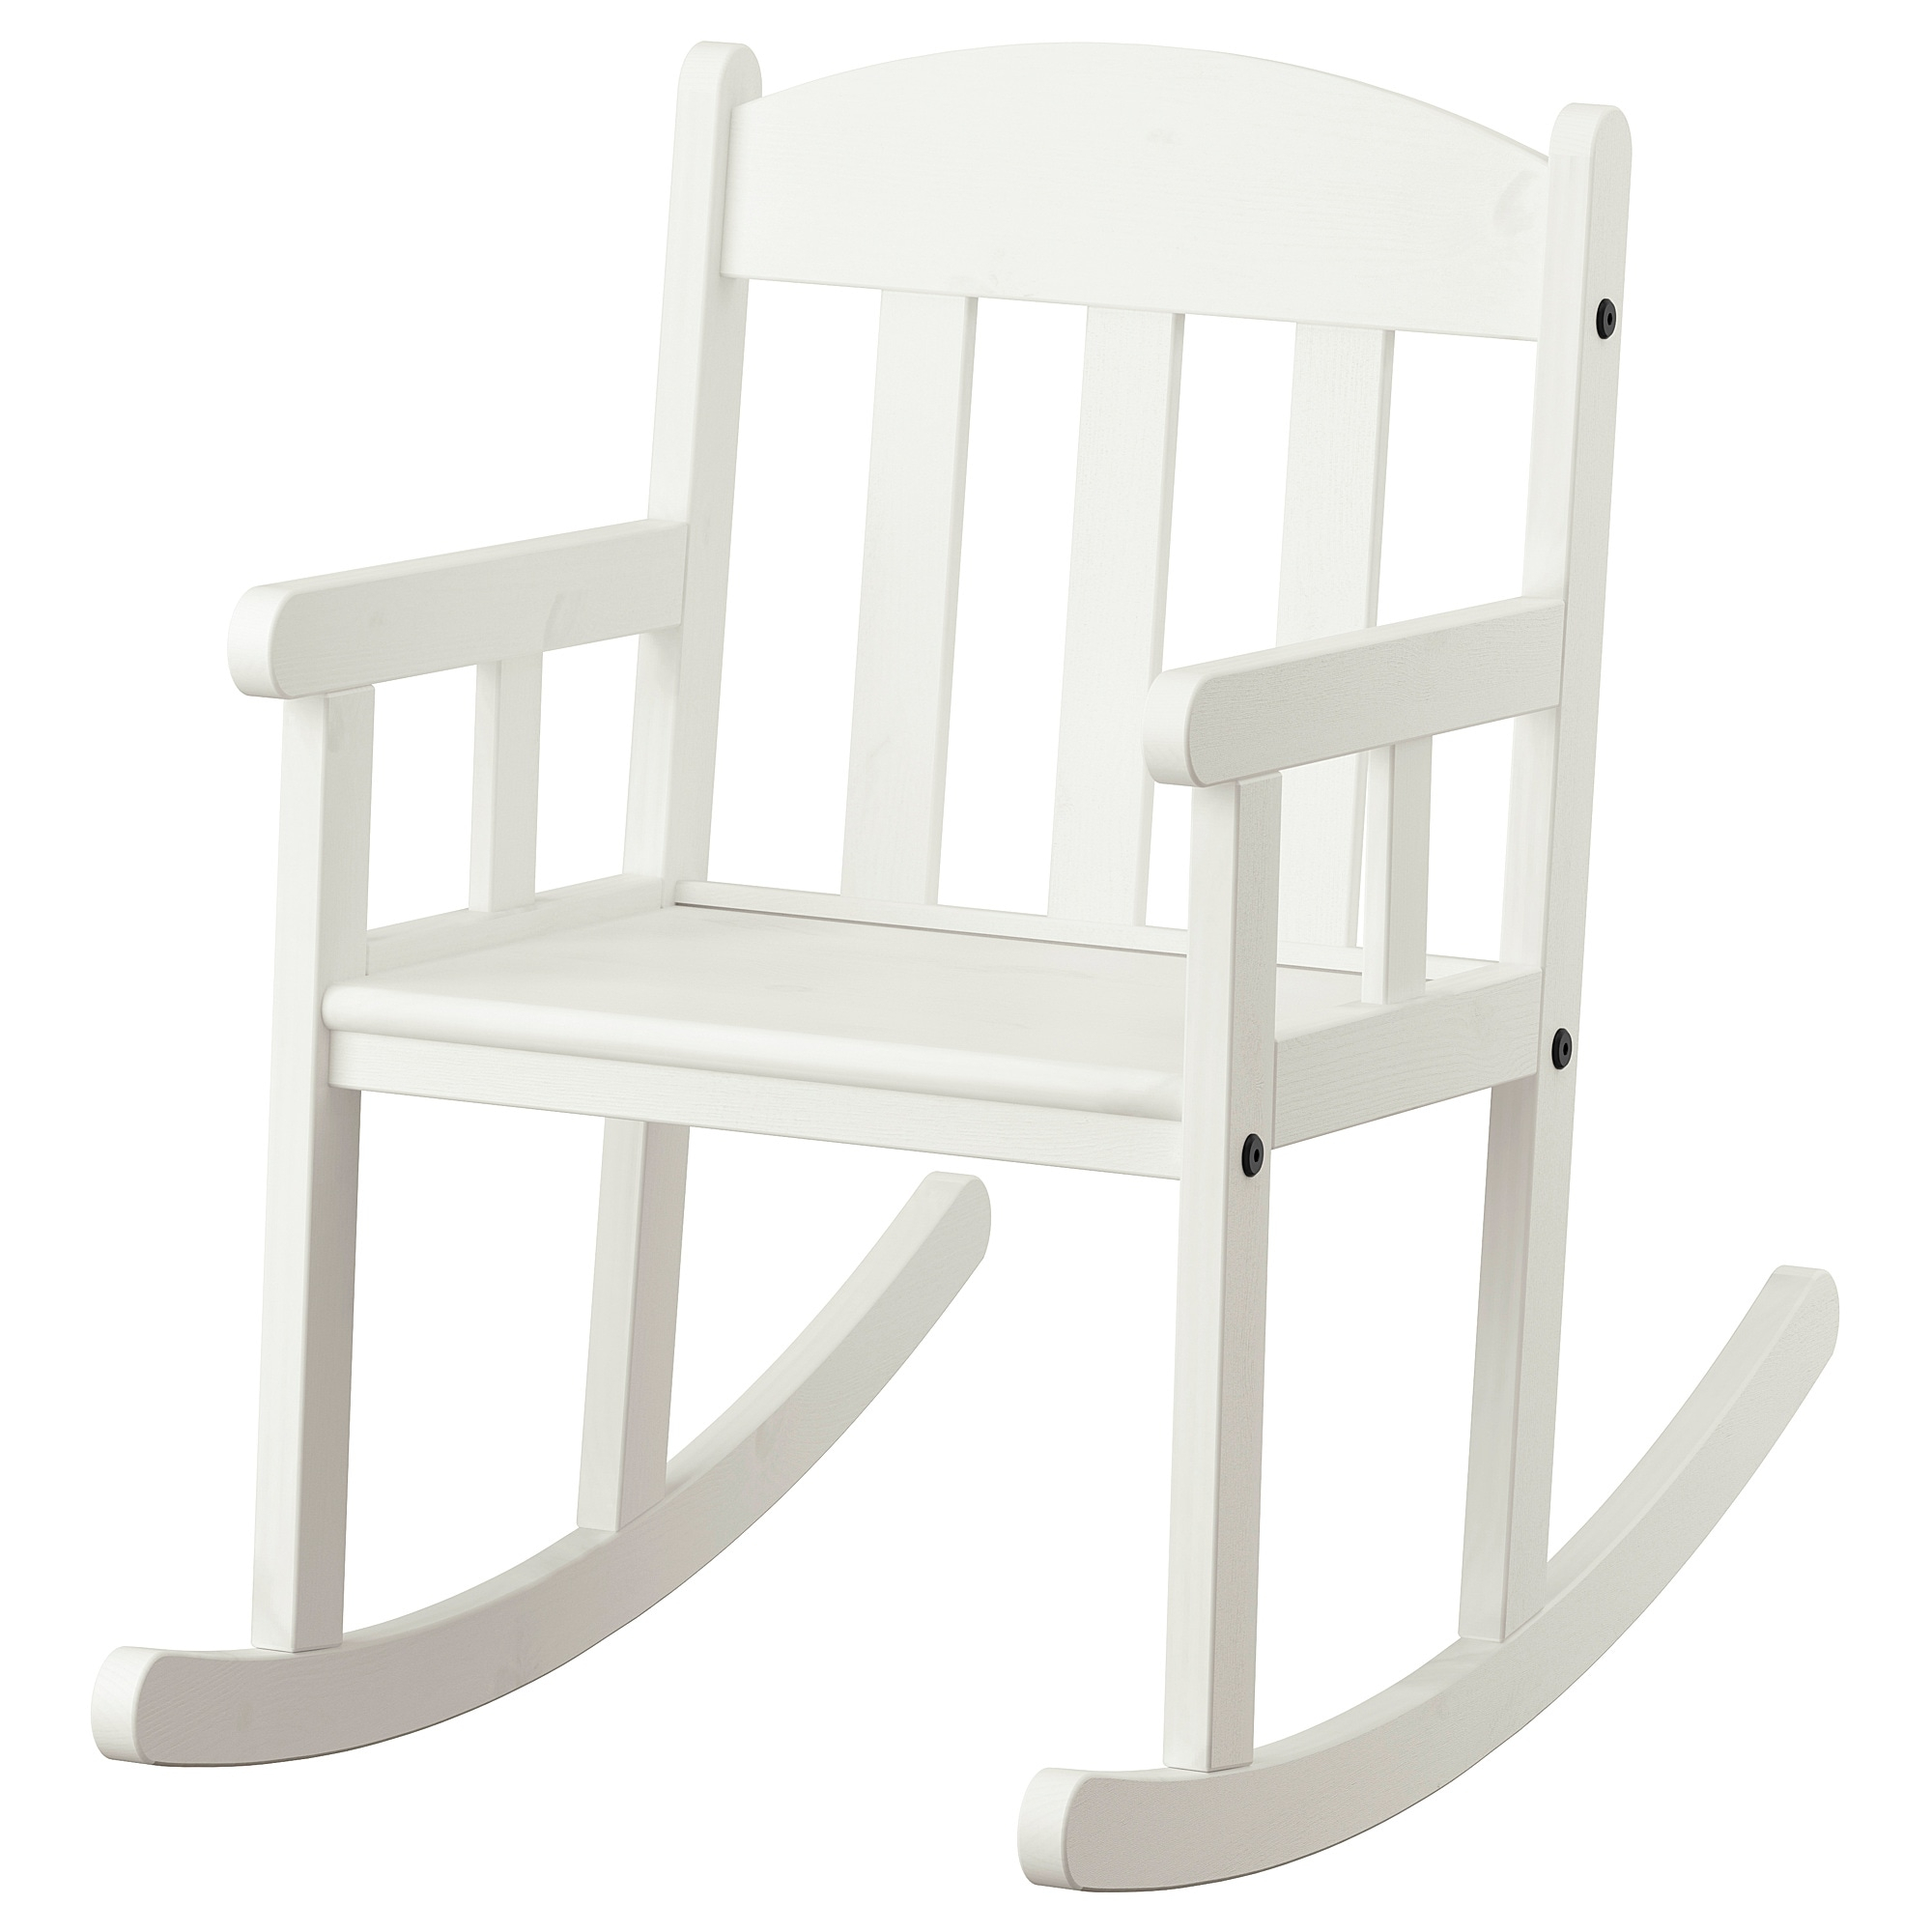 Inspiration about Rocking Chair Sundvik White Intended For White Wood Rocking Chairs (#20 of 20)